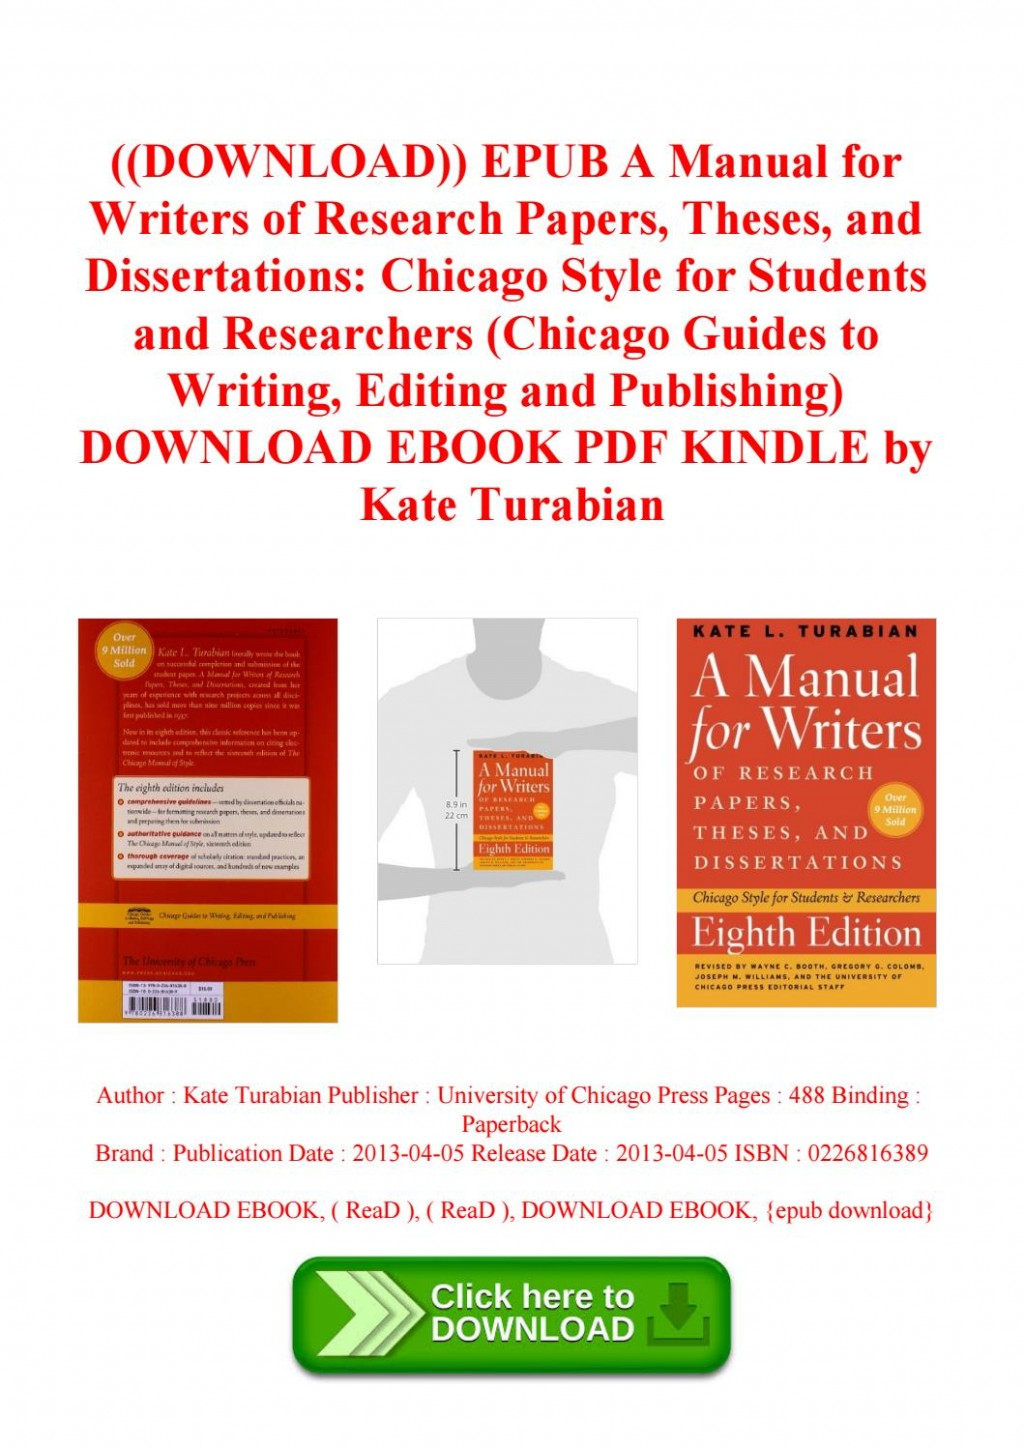 003 Page 1 Manual For Writers Of Researchs Theses And Dissertations Magnificent Research Papers A Amazon 9th Edition Pdf 8th 13 Large